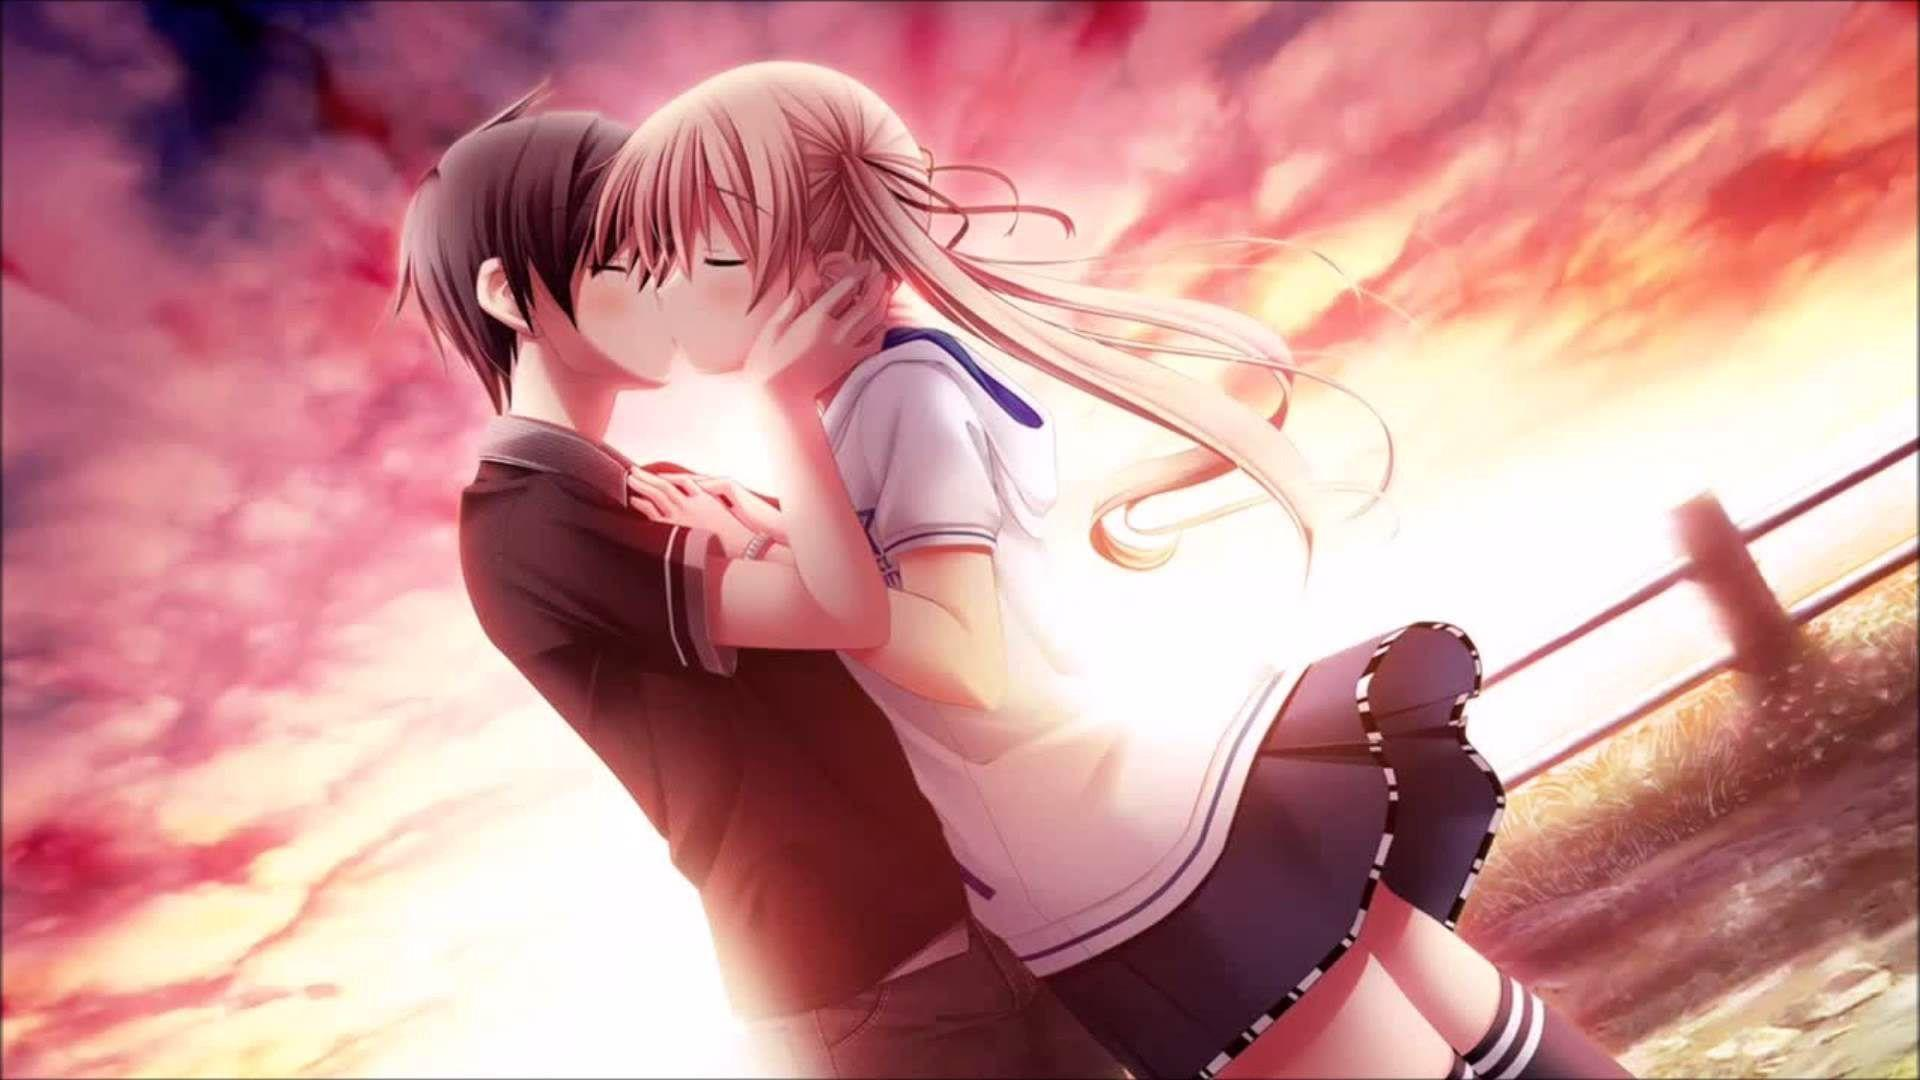 Love Kiss Of Cute Anime Couple HD Wallpaper - Wallpapers109 A Huge ...